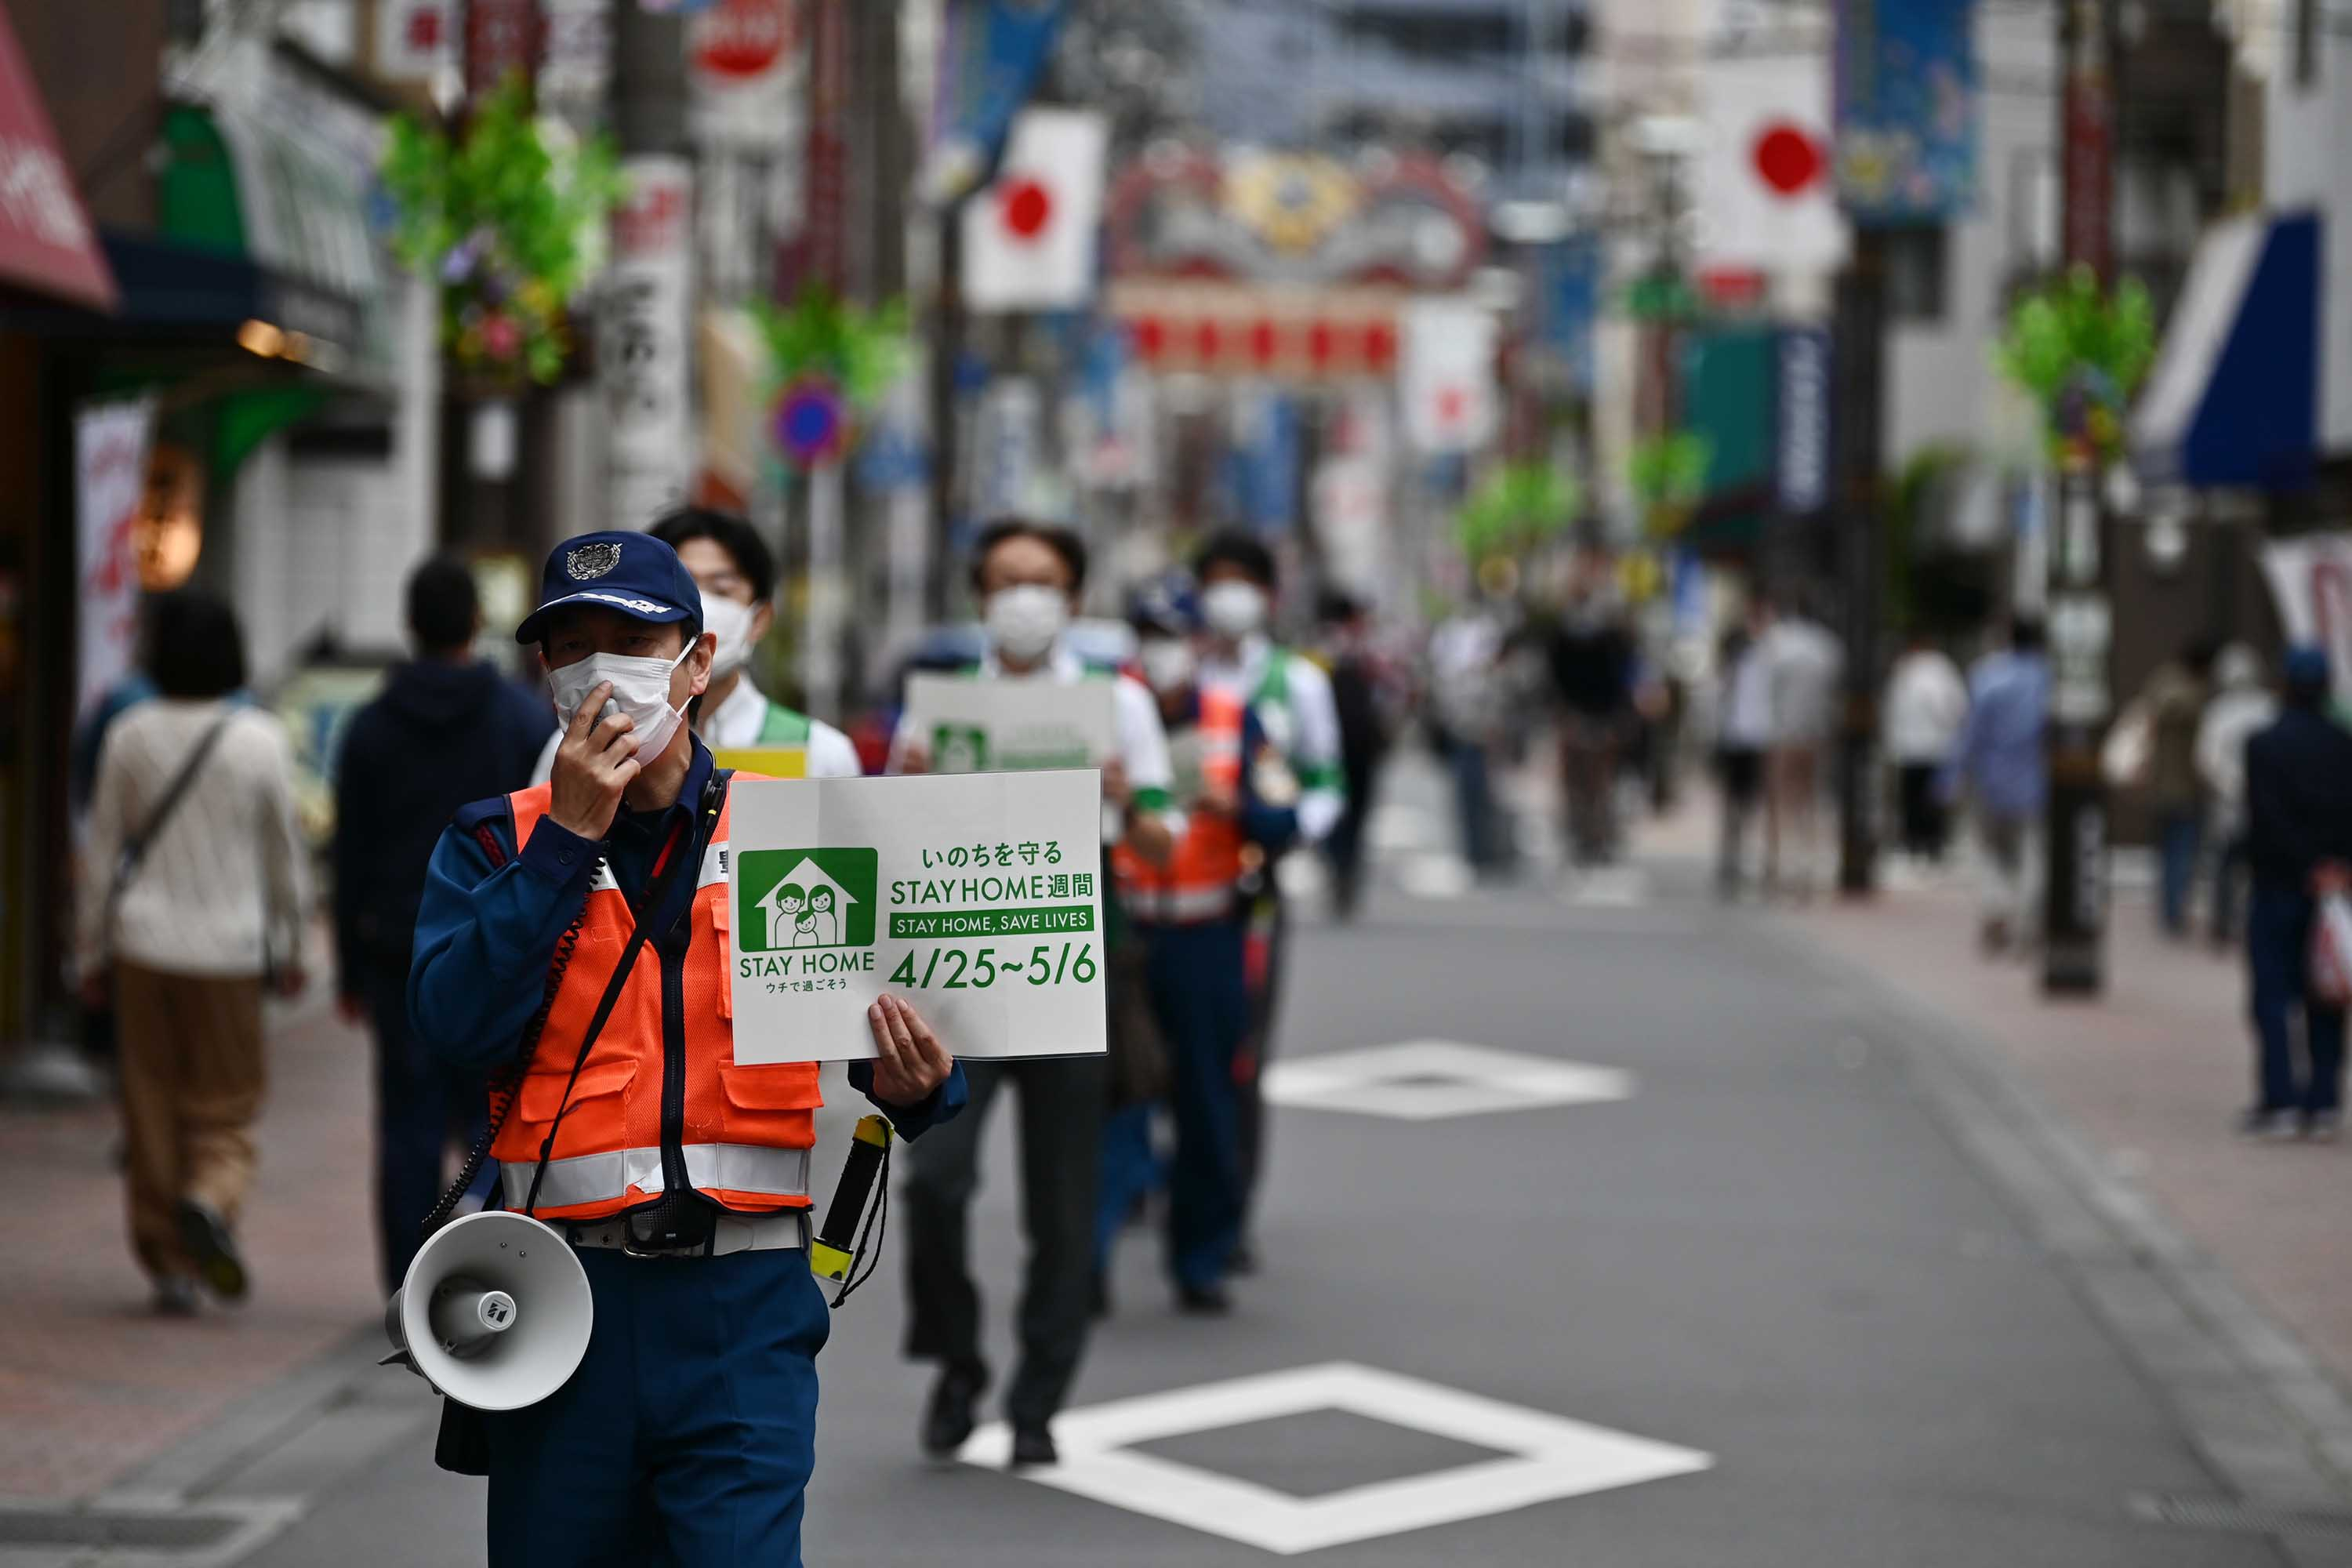 Municipal employees patrol a street asking people to stay home amid the coronavirus outbreak in Tokyo on May 4.